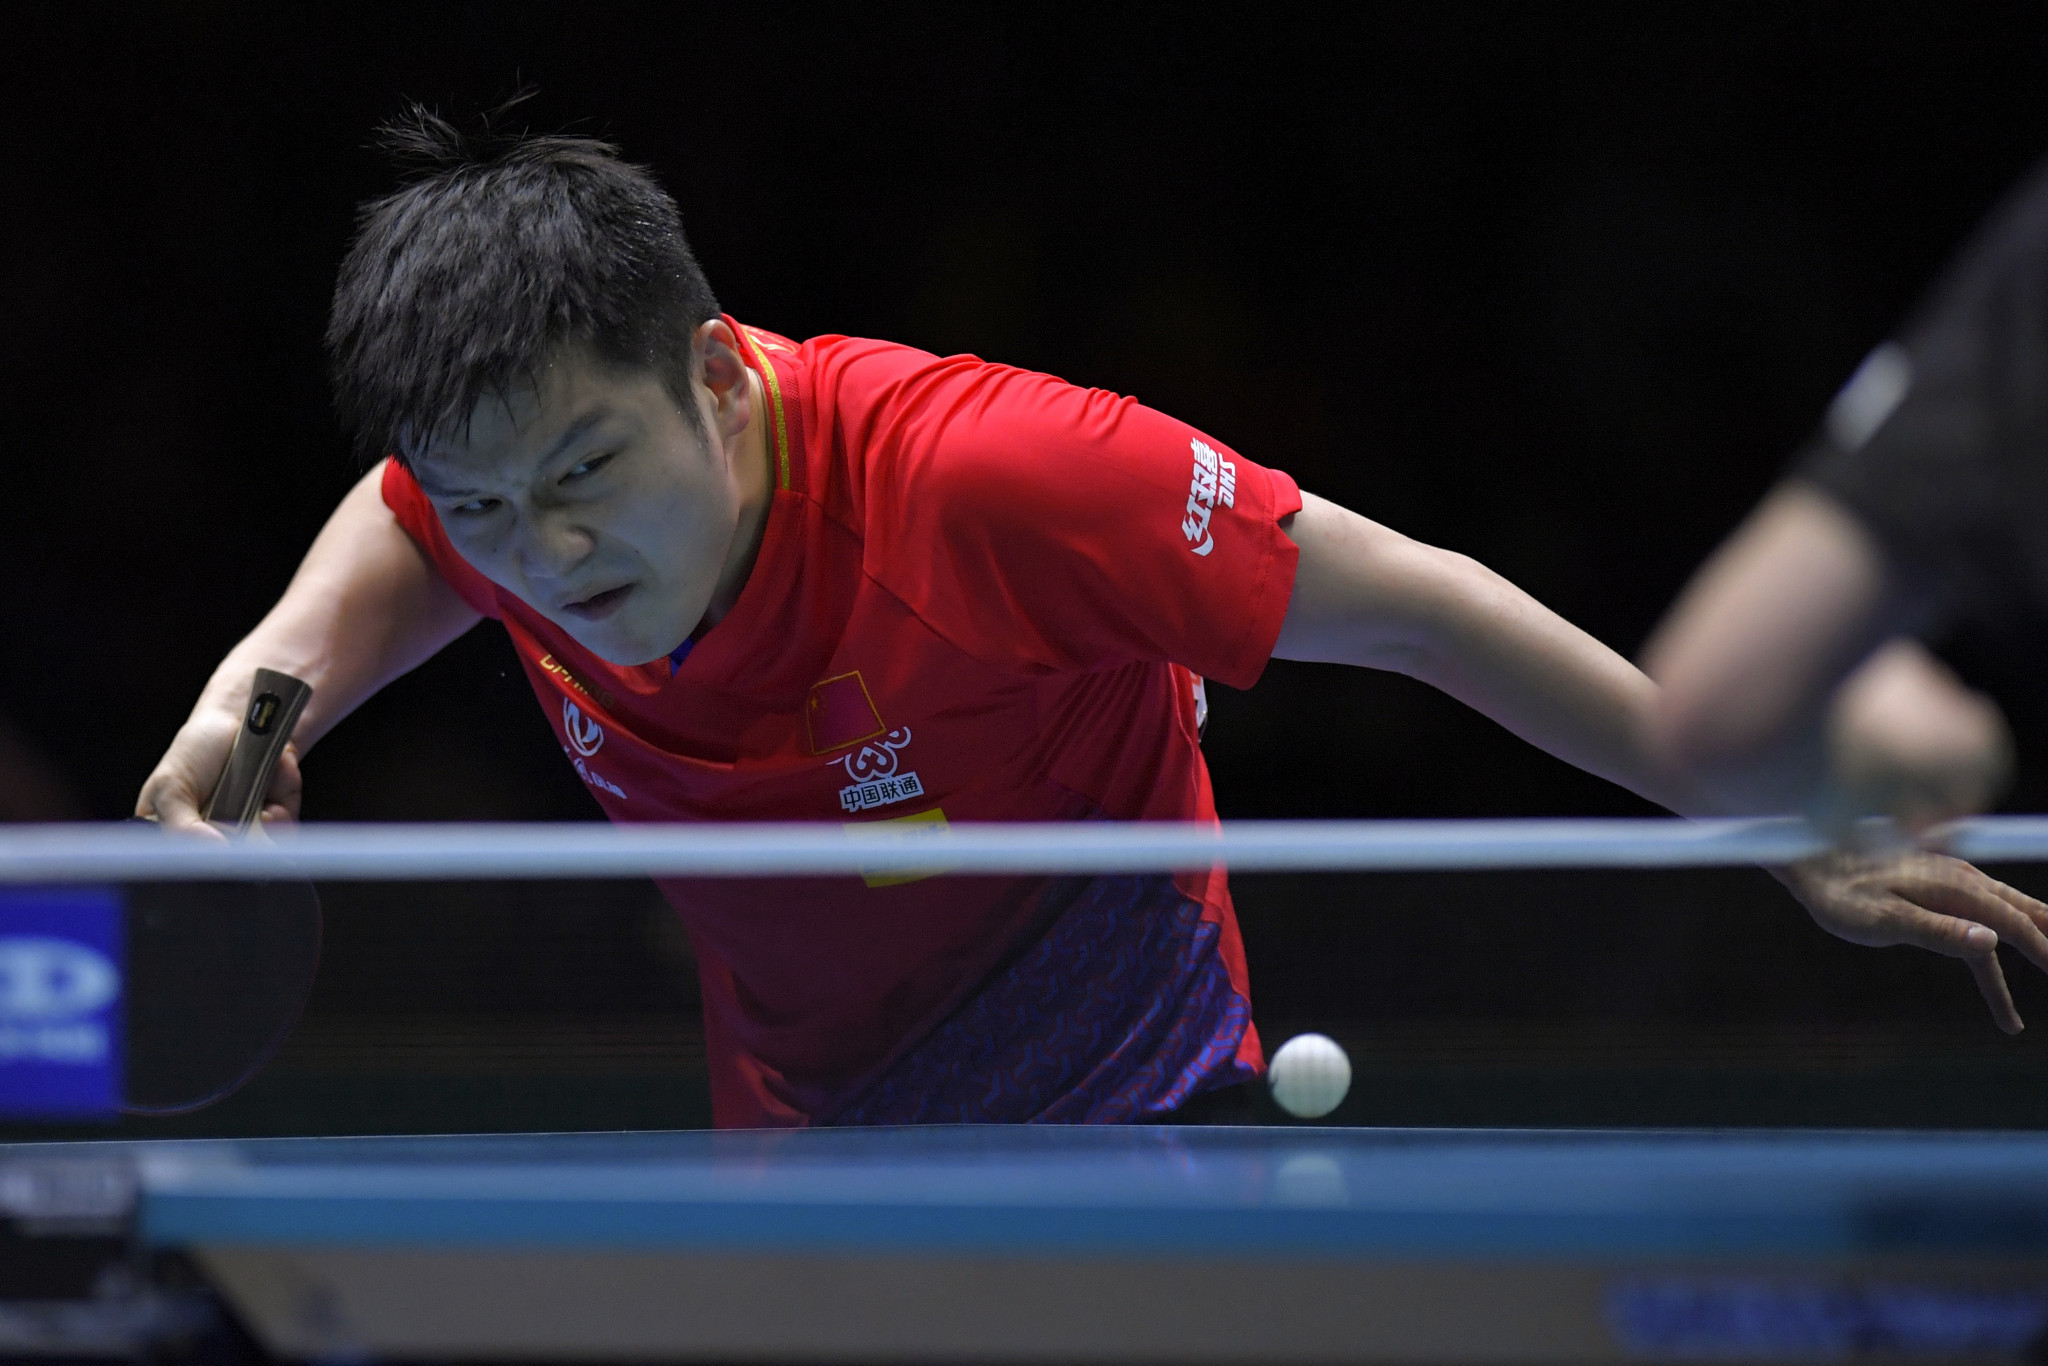 Fan wins Austrian Open to clinch second straight ITTF World Tour title